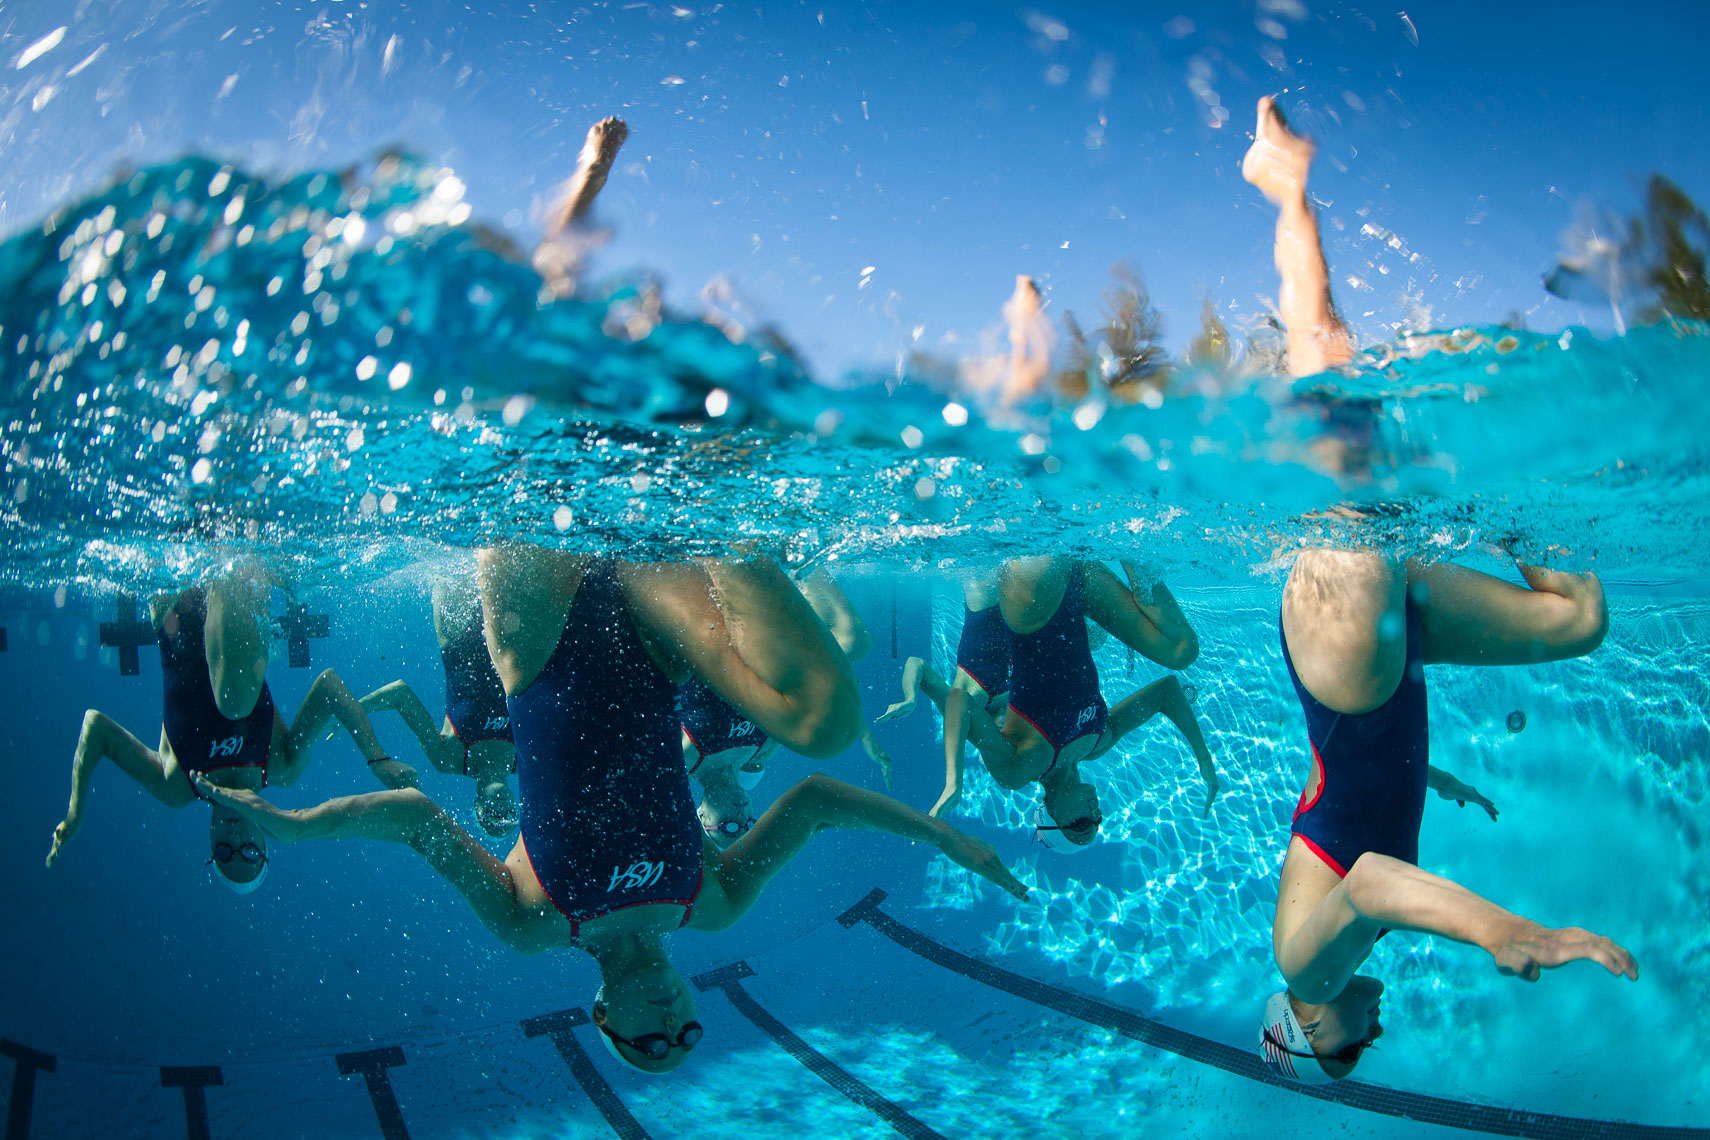 Underwater Series of United States Olympic Synchronized Swim Team